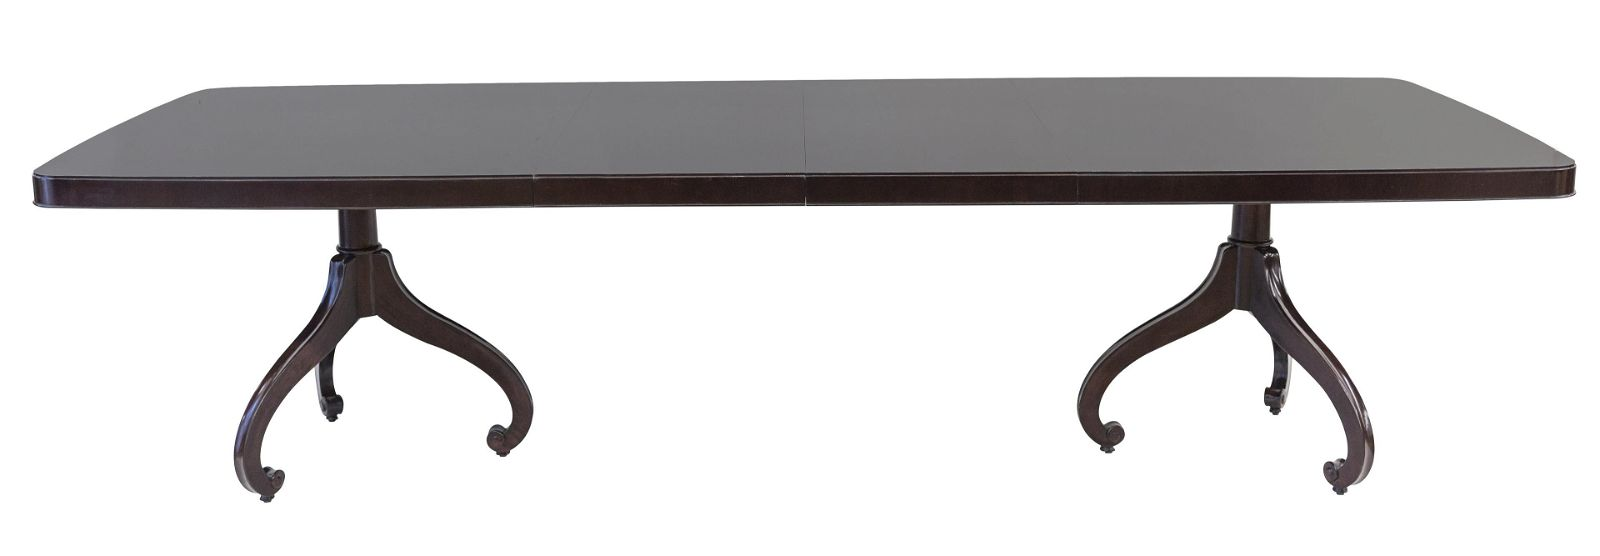 Paolo Buffa Style Dining Table